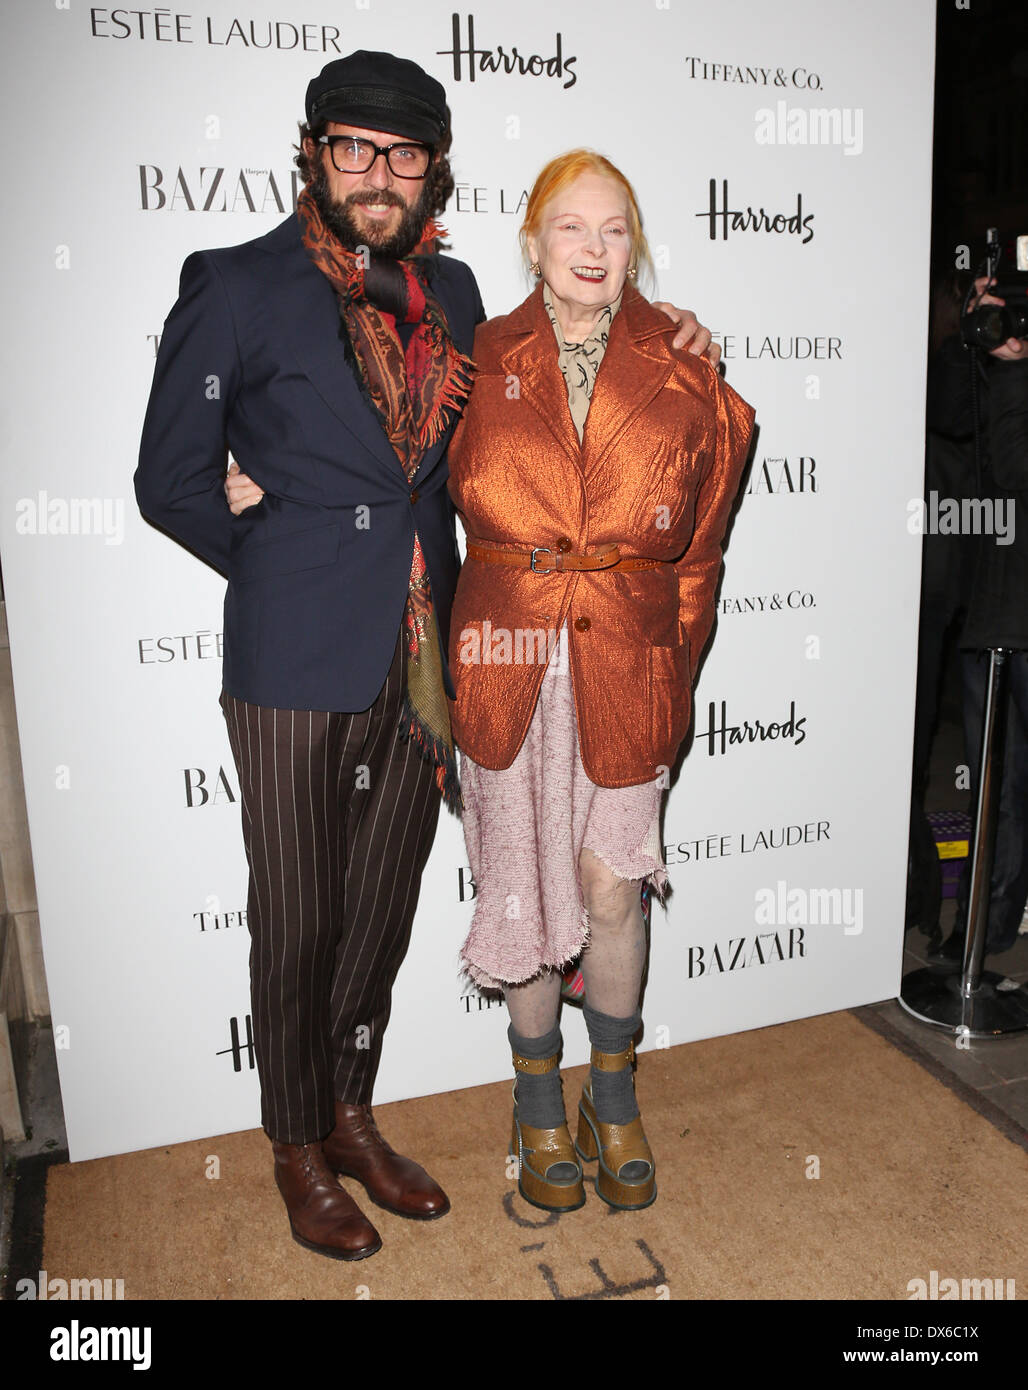 c7bd70a2c3 Vivienne Westwood and husband Andreas Kronthaler Harper's Bazaar Women of  the Year 2012 held at Claridges - Arrivals London, England - 31.10.12  Featuring: ...